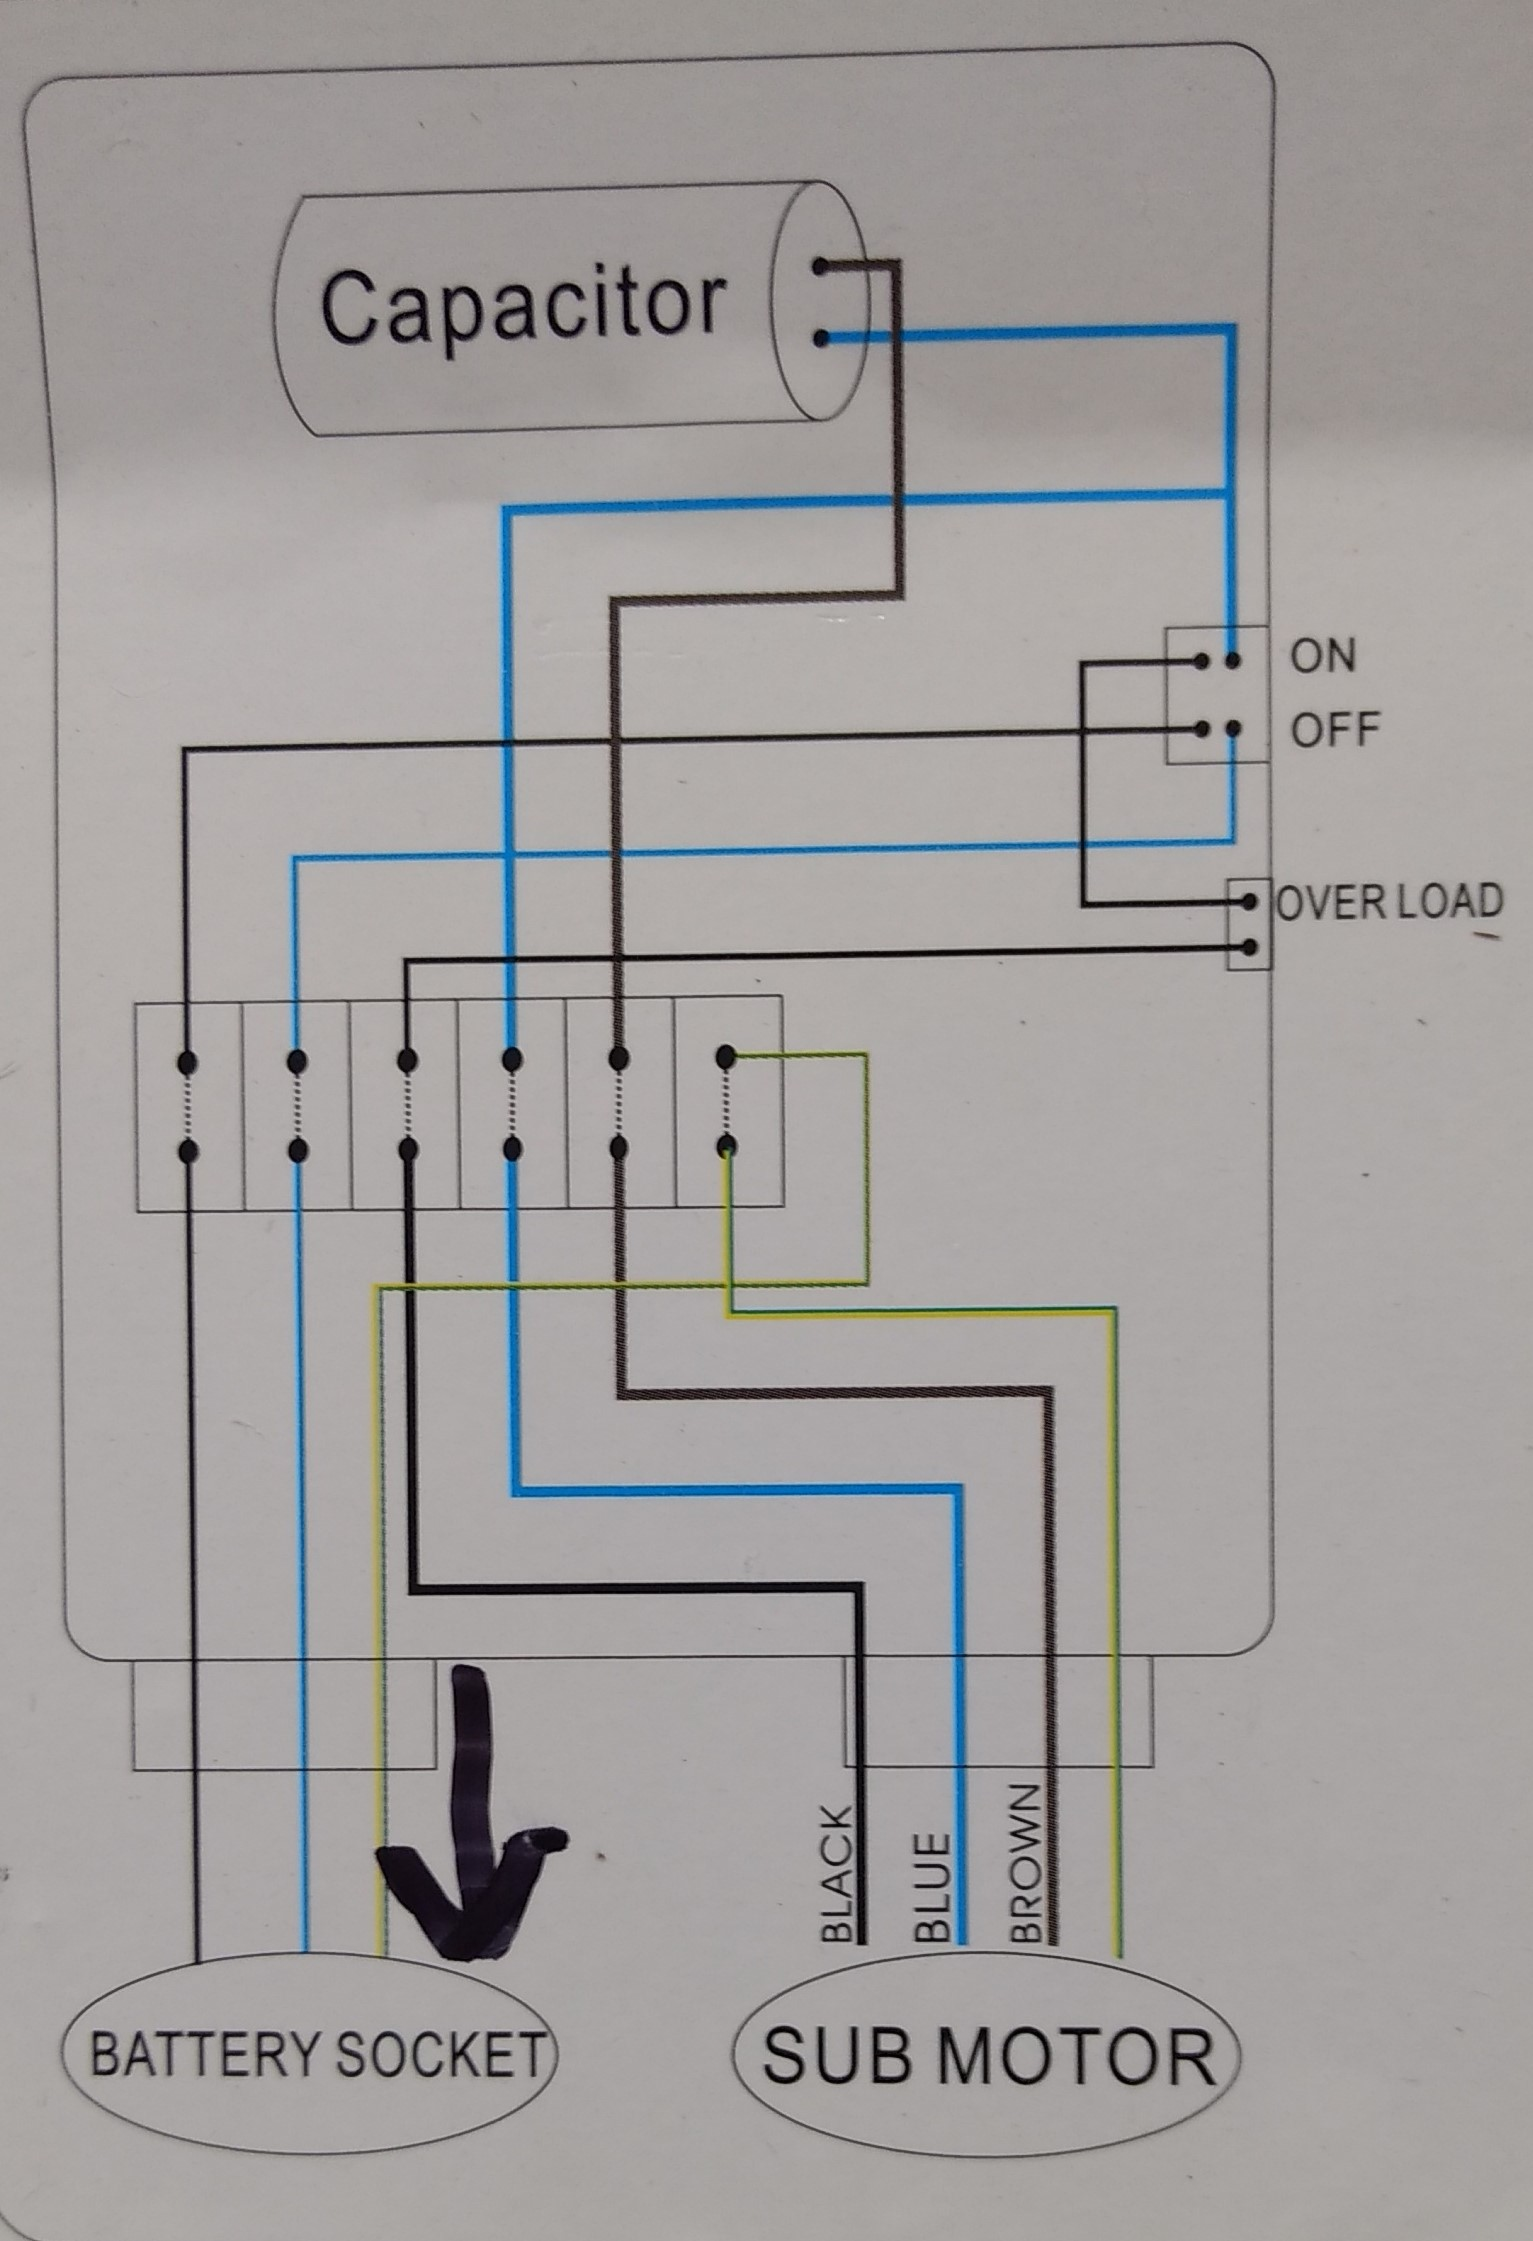 Wiring Diagram Also Franklin Well Pump Control Box Wiring Diagram On